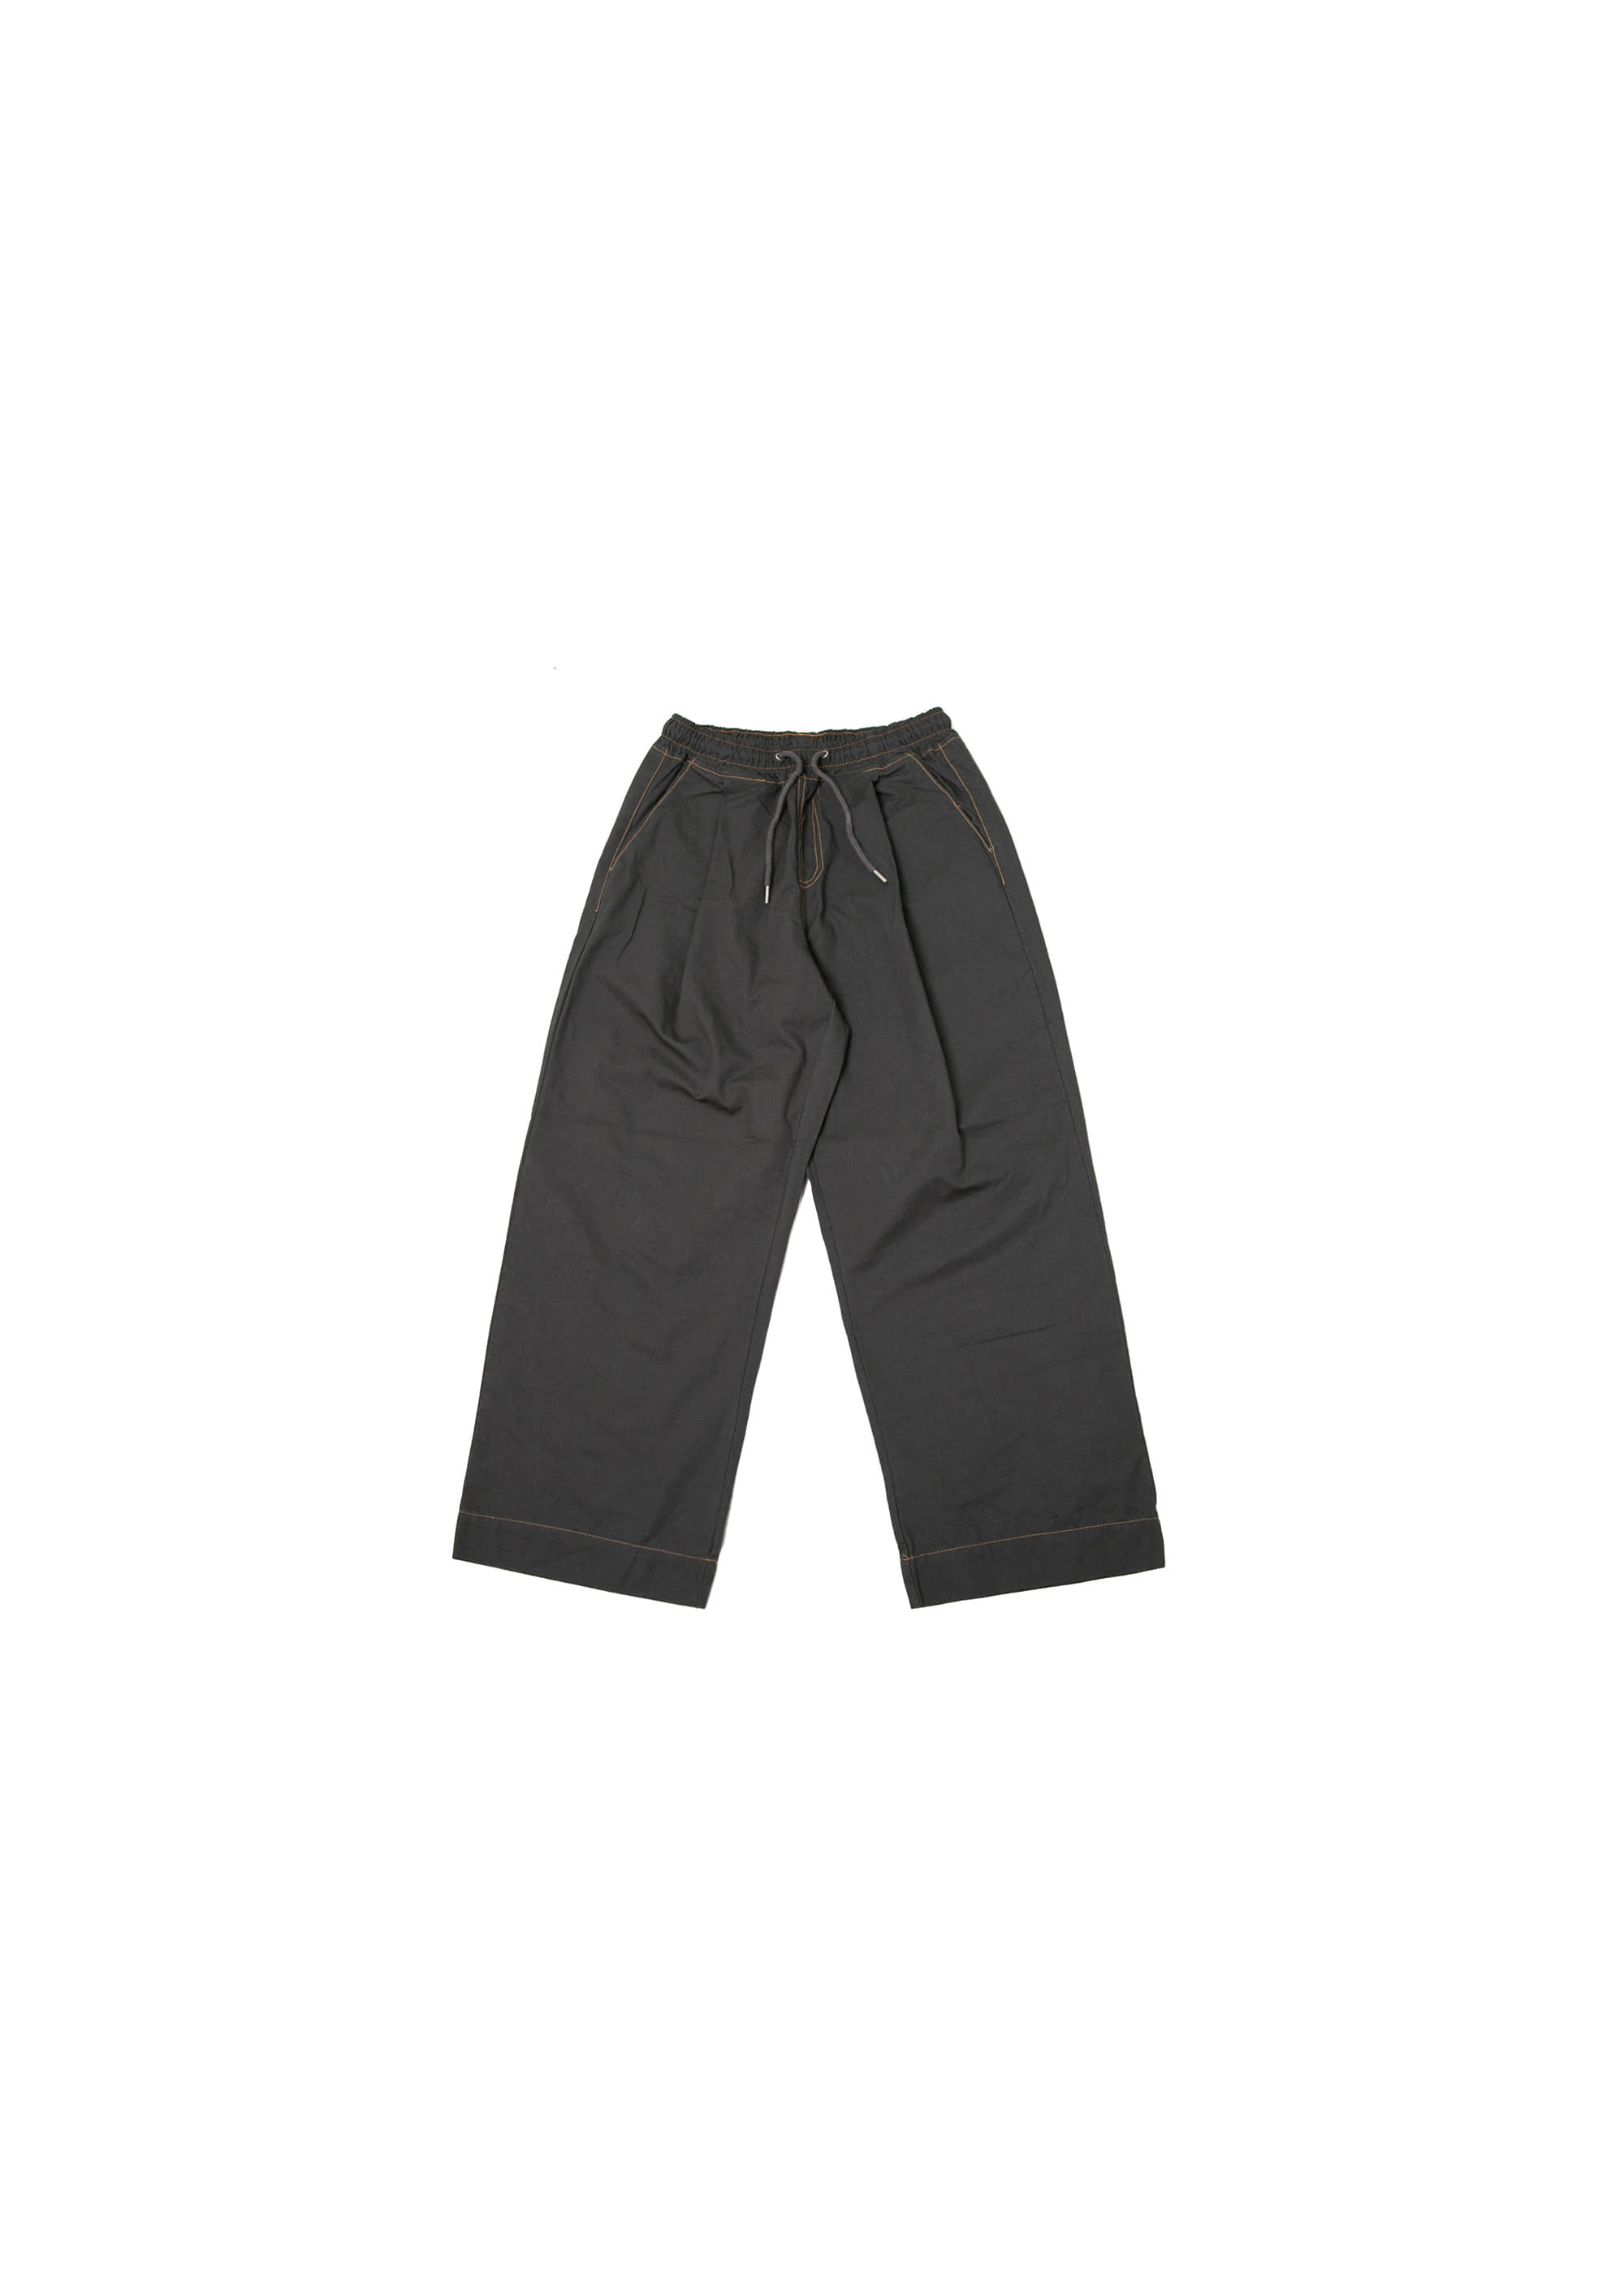 Big Pocket Work Pants - Dark Grey